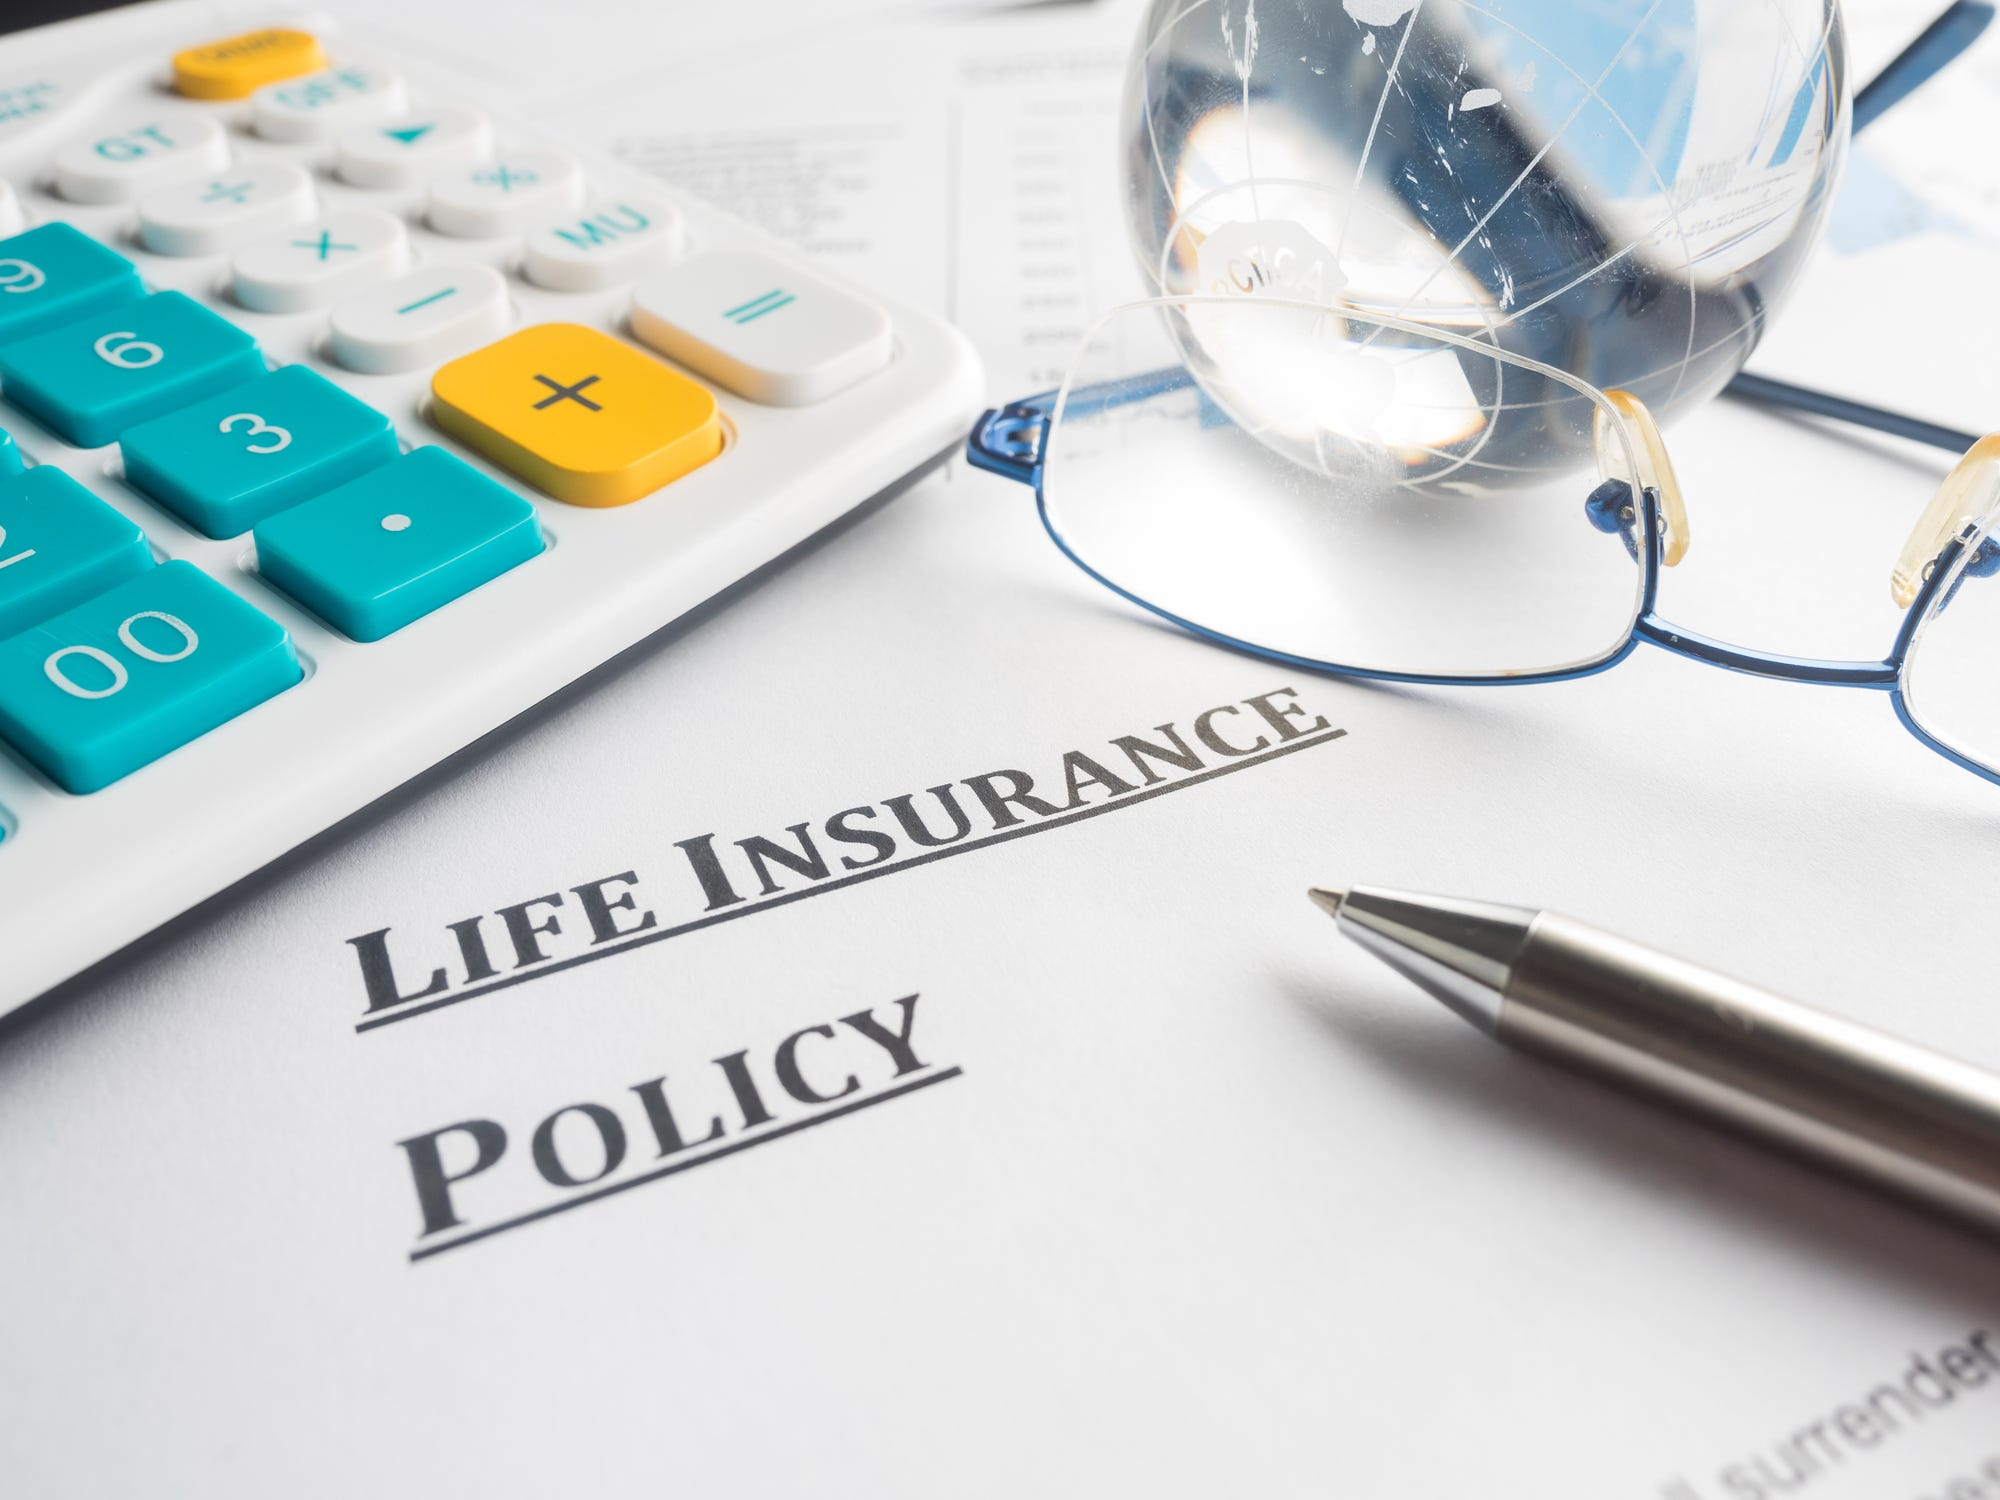 usatoday.com - Ken Fisher, Special to USA TODAY - Don't dismiss life insurance as too pricey. Here's what you need to know to pick a plan